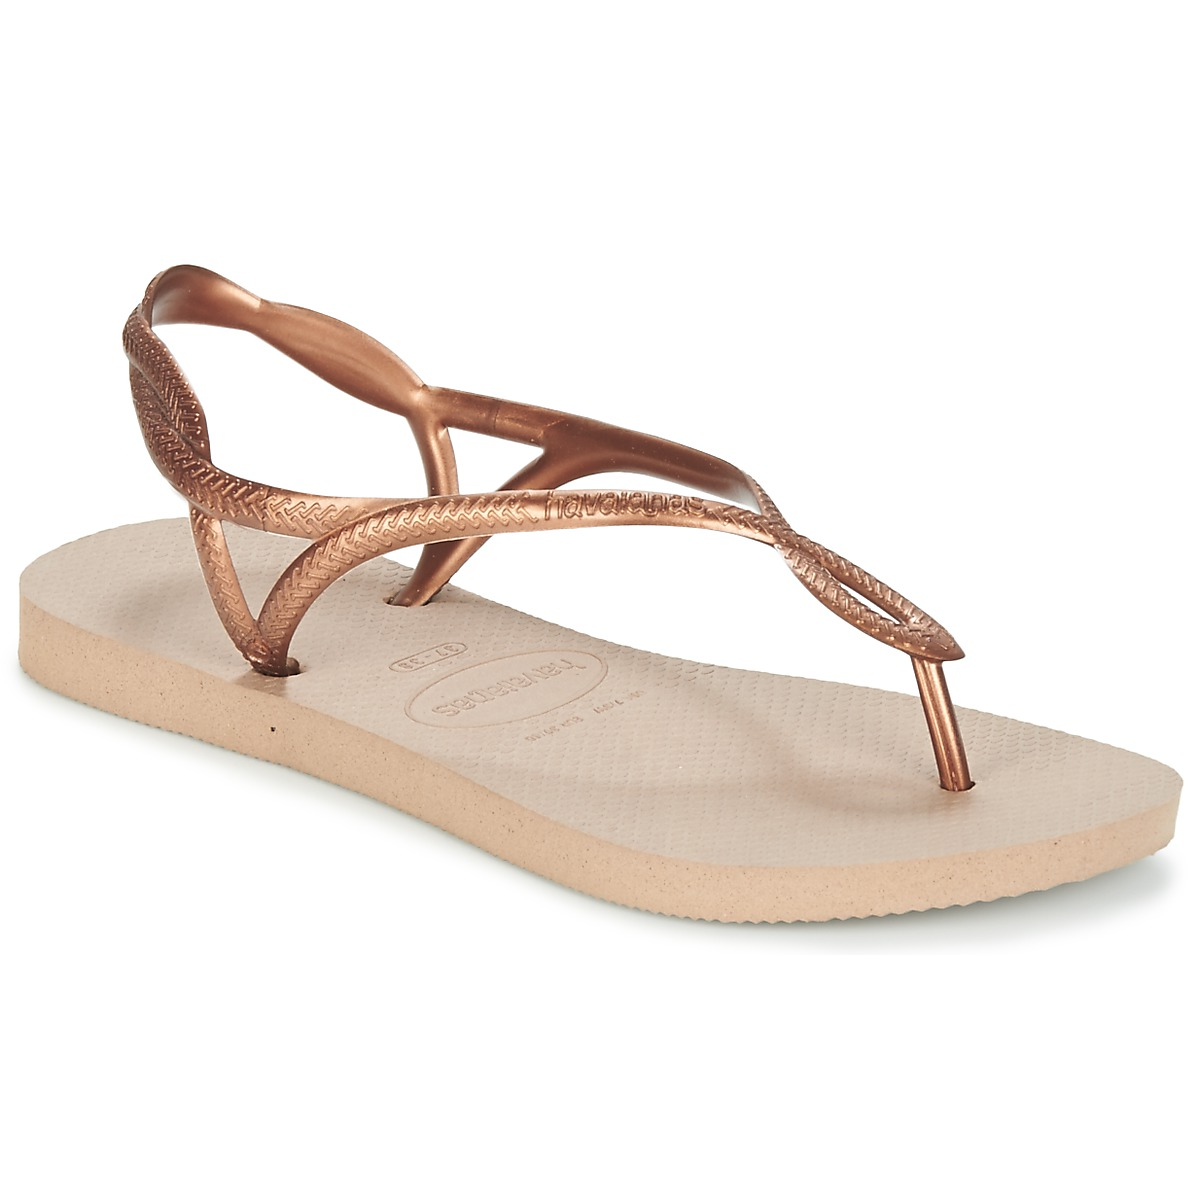 havaianas luna bronze livraison gratuite avec chaussures tongs femme 22 99. Black Bedroom Furniture Sets. Home Design Ideas